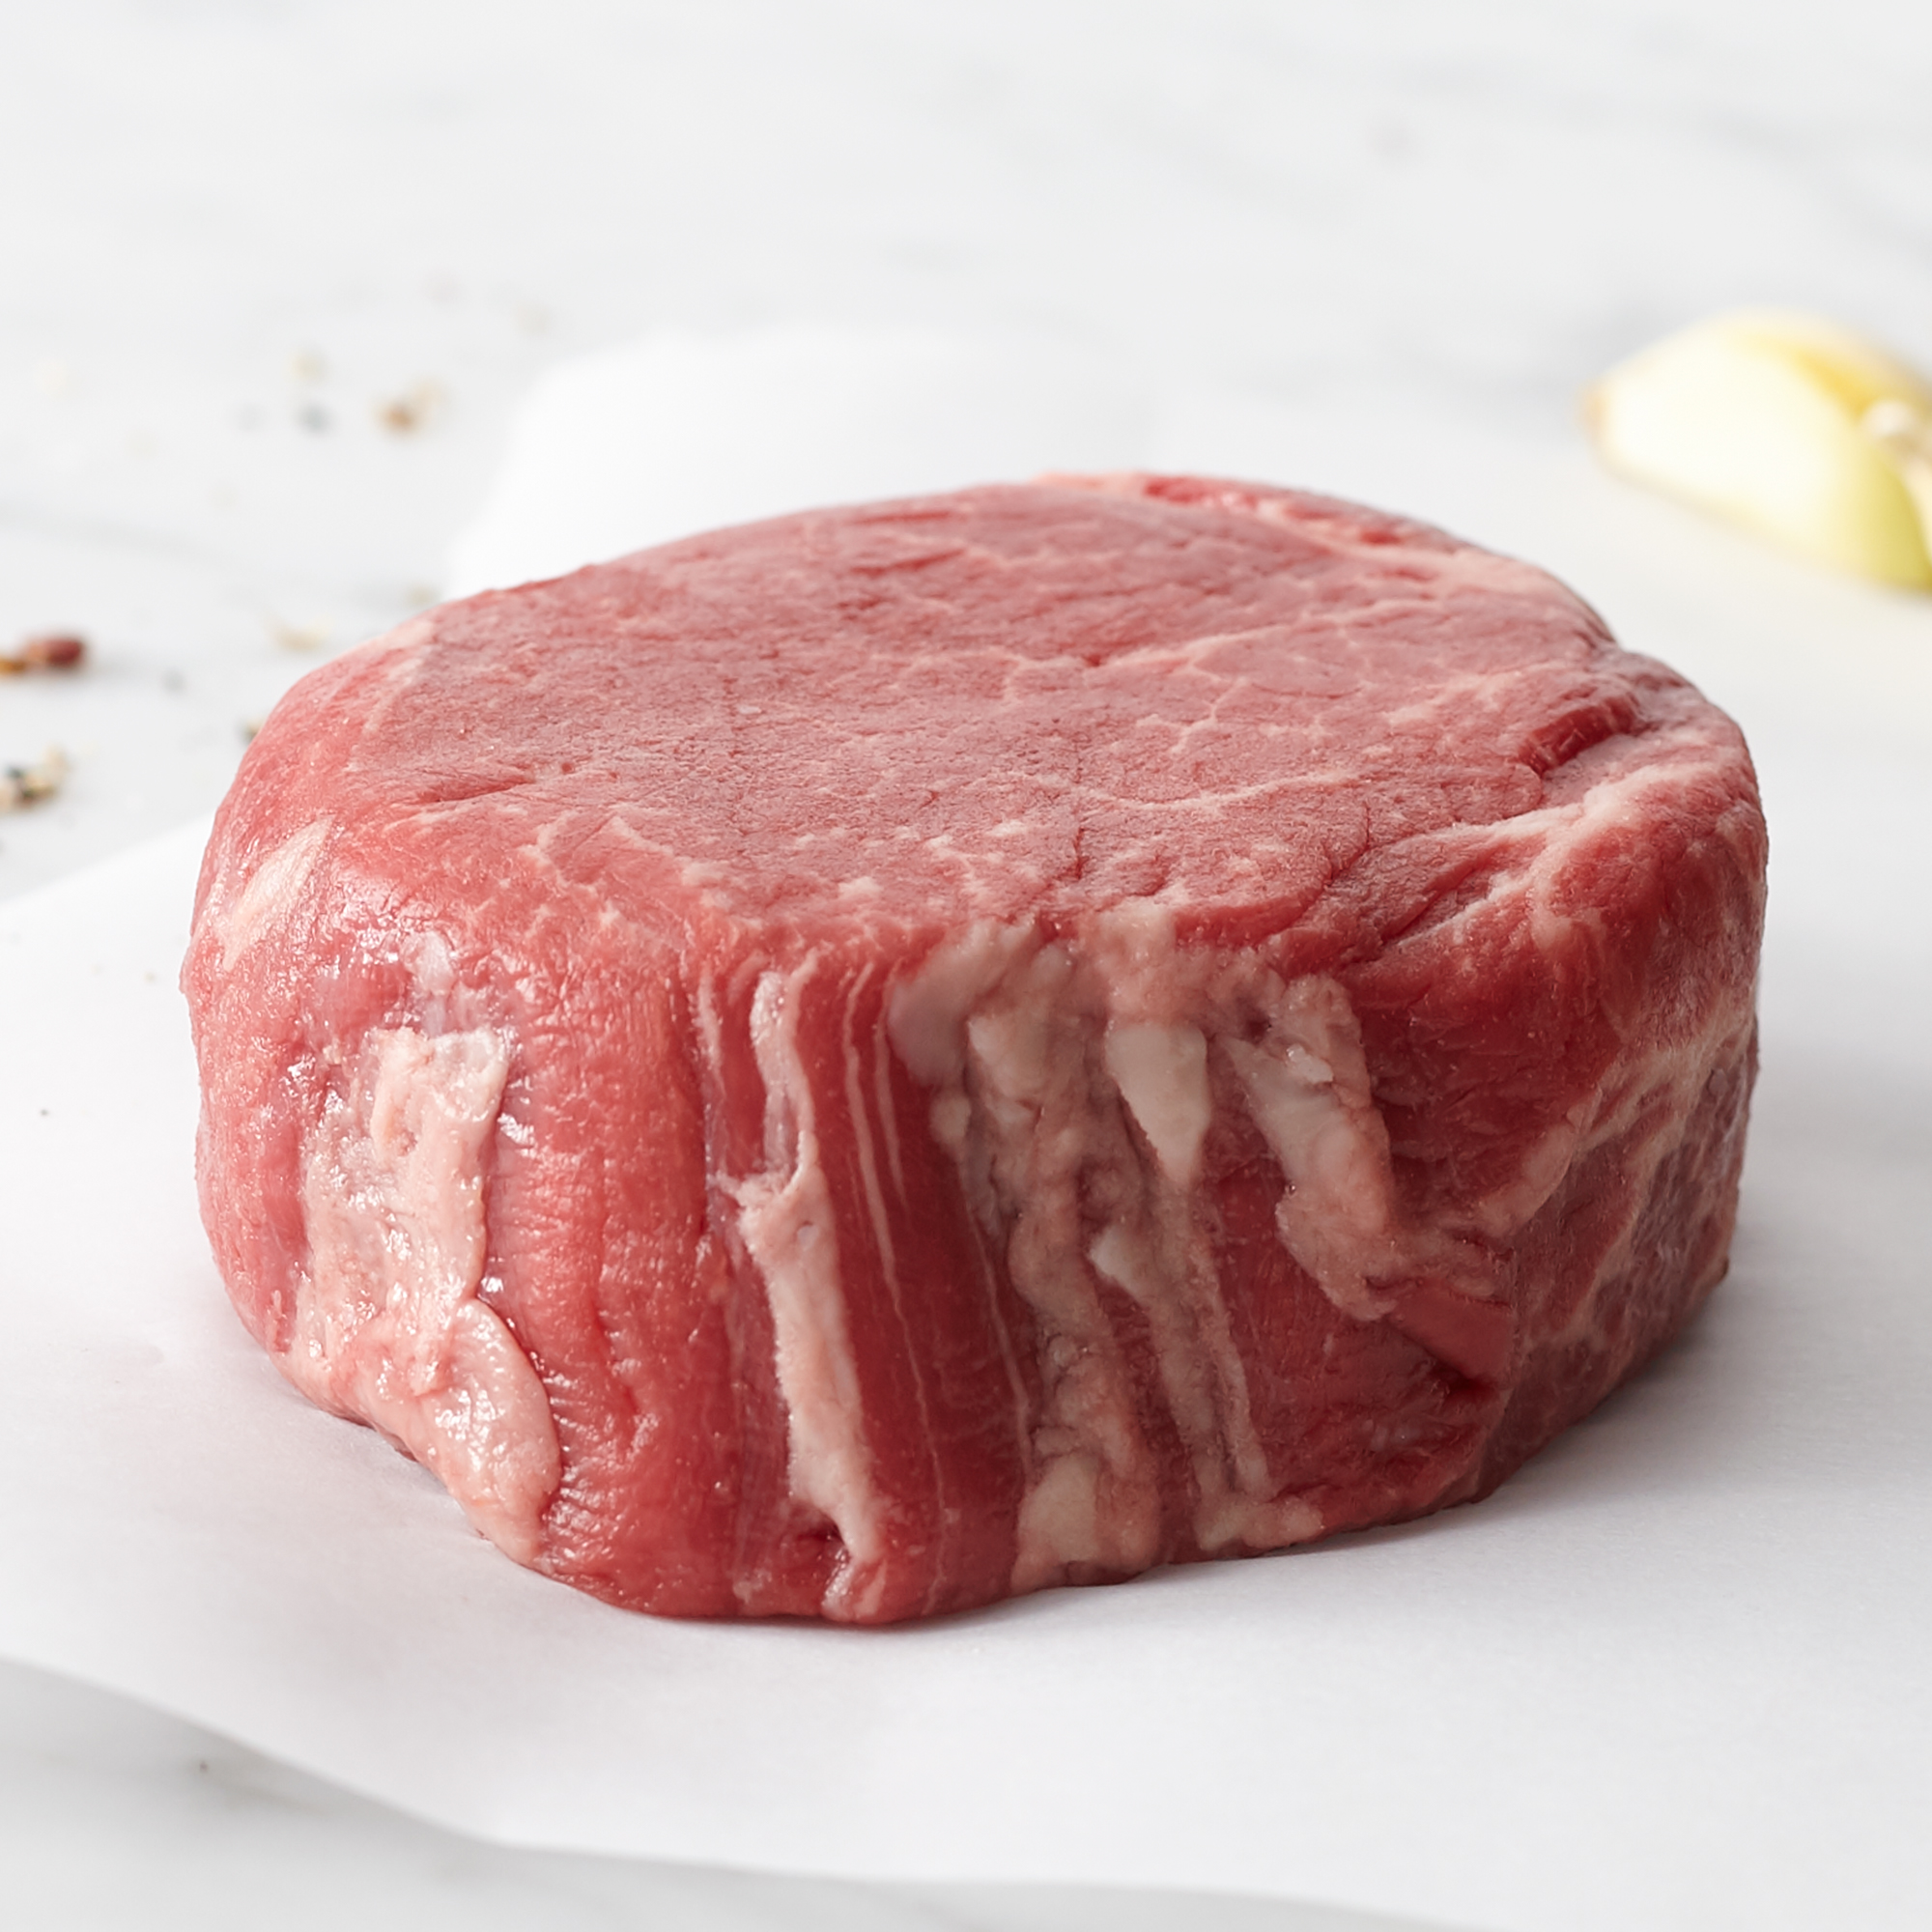 6 Prime 6 oz. Boneless Filets. Ships frozen & raw